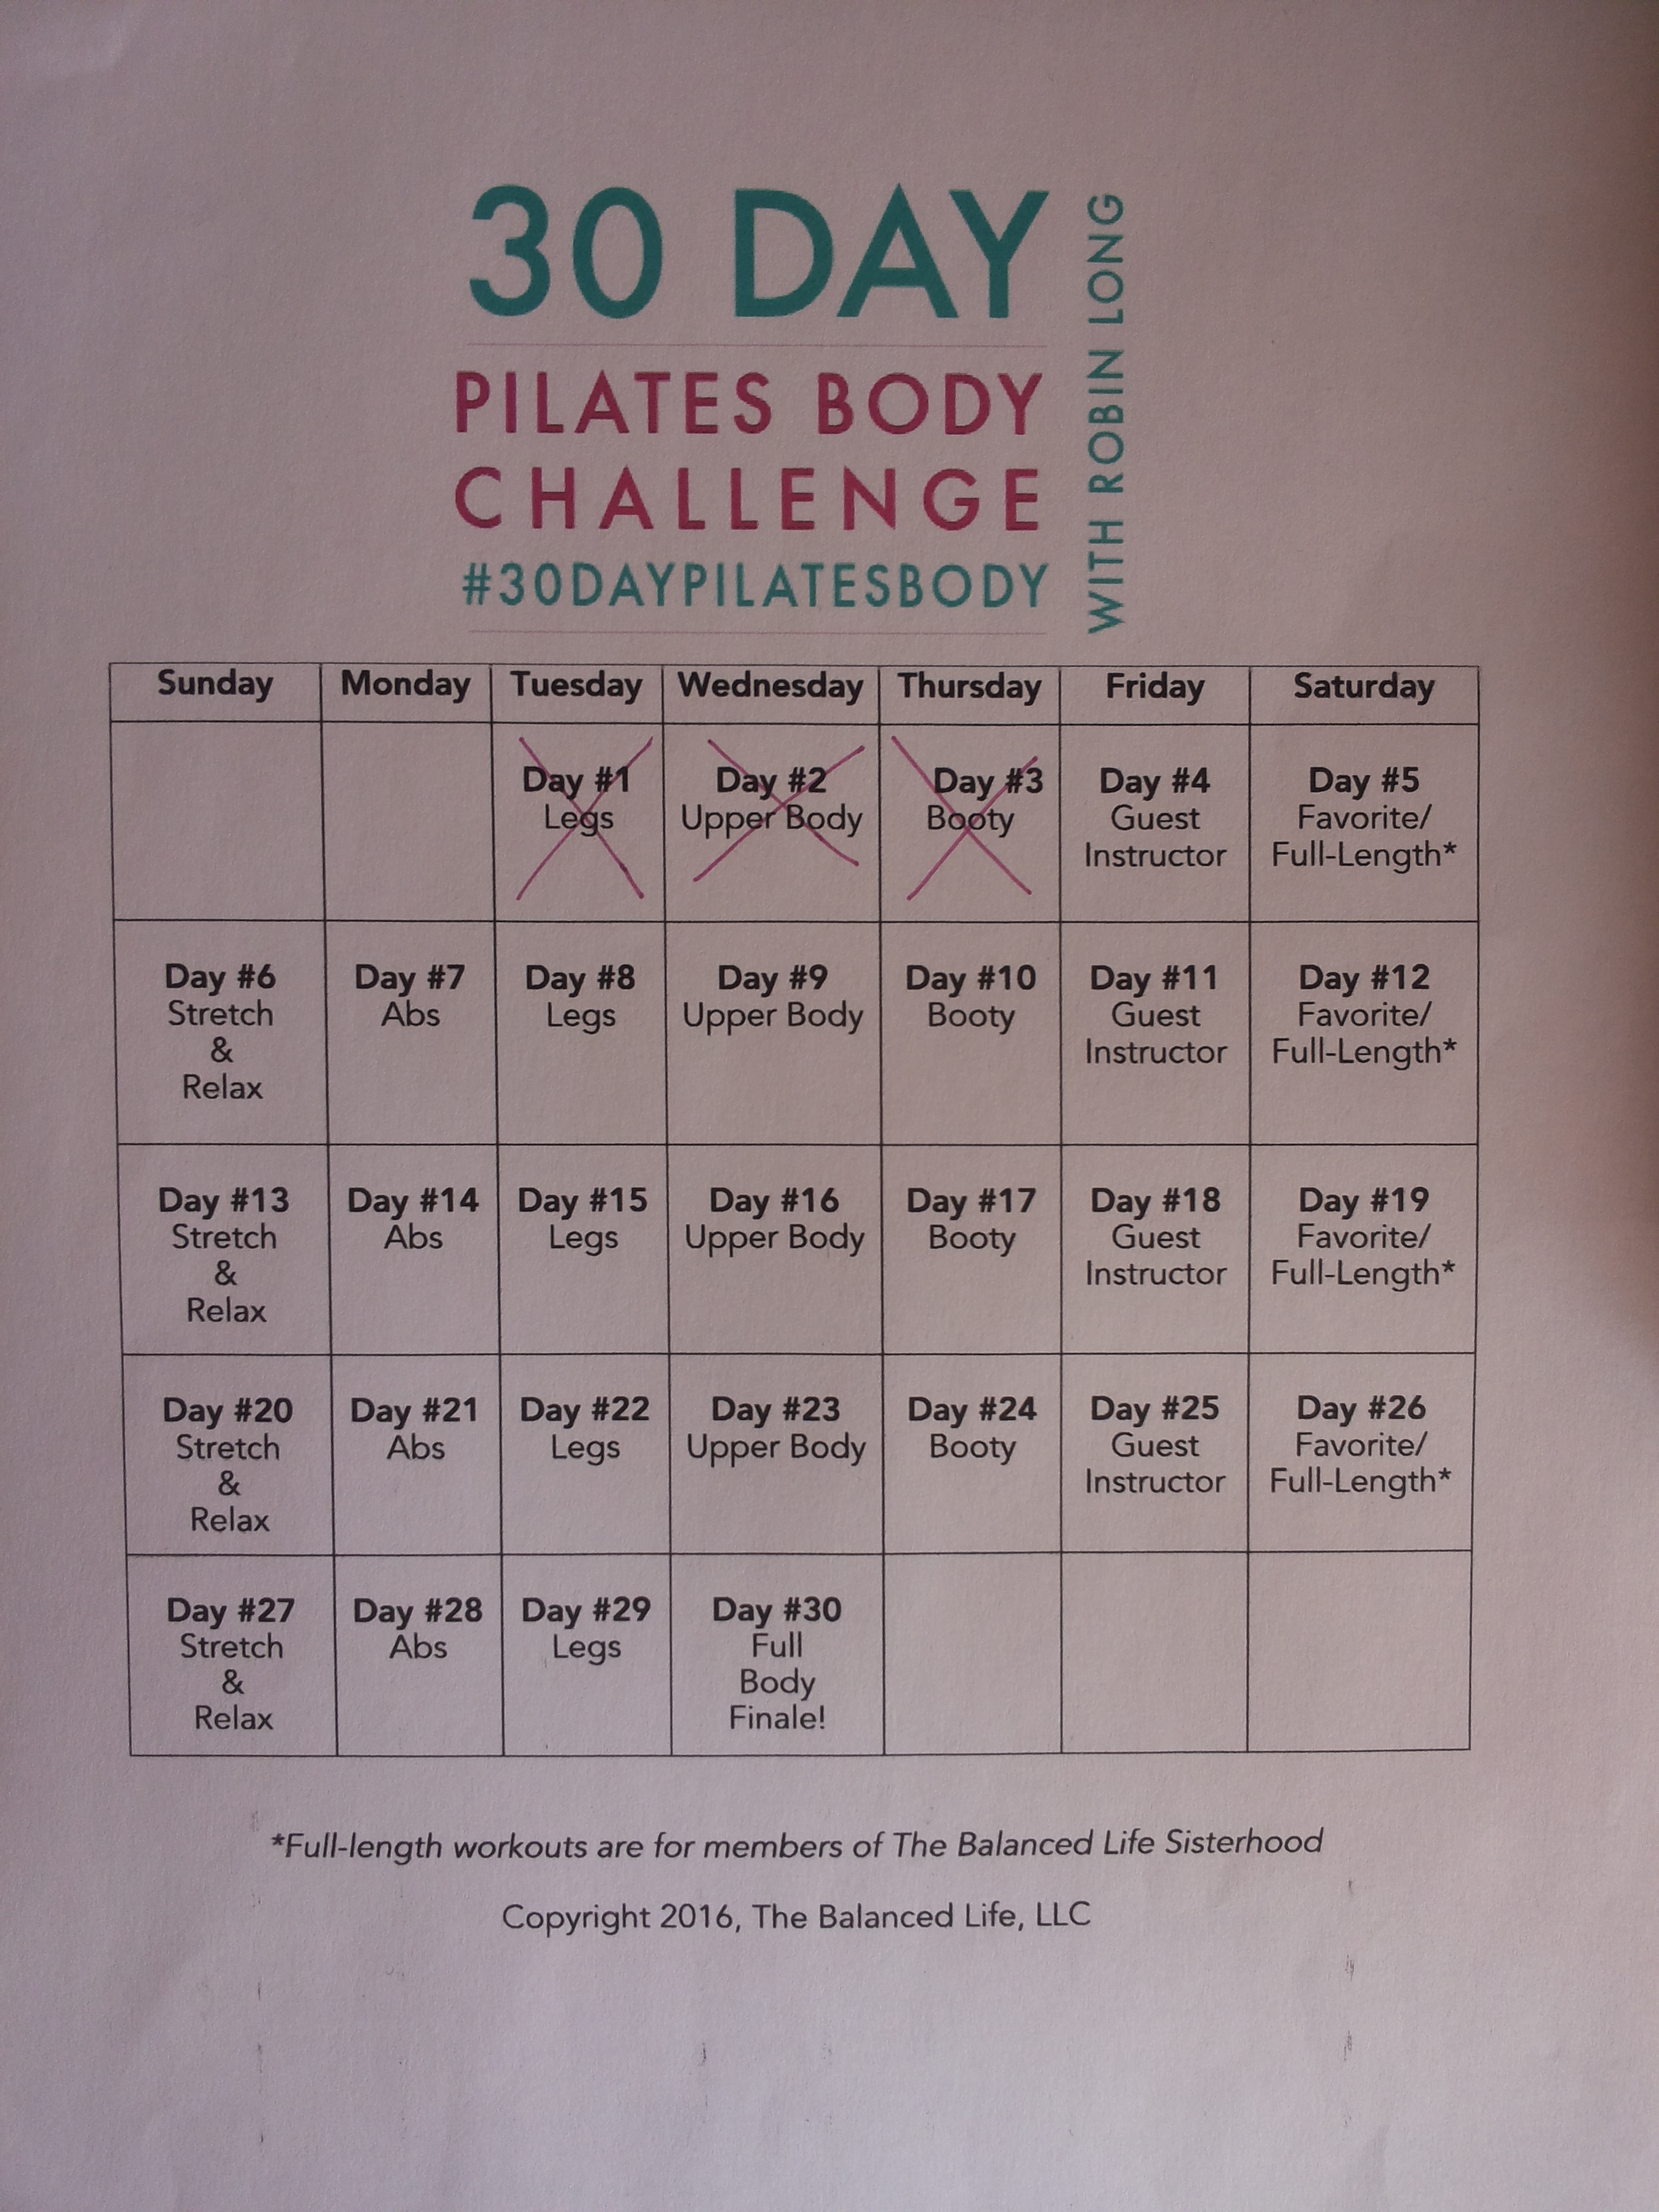 30 days pilates body challenge